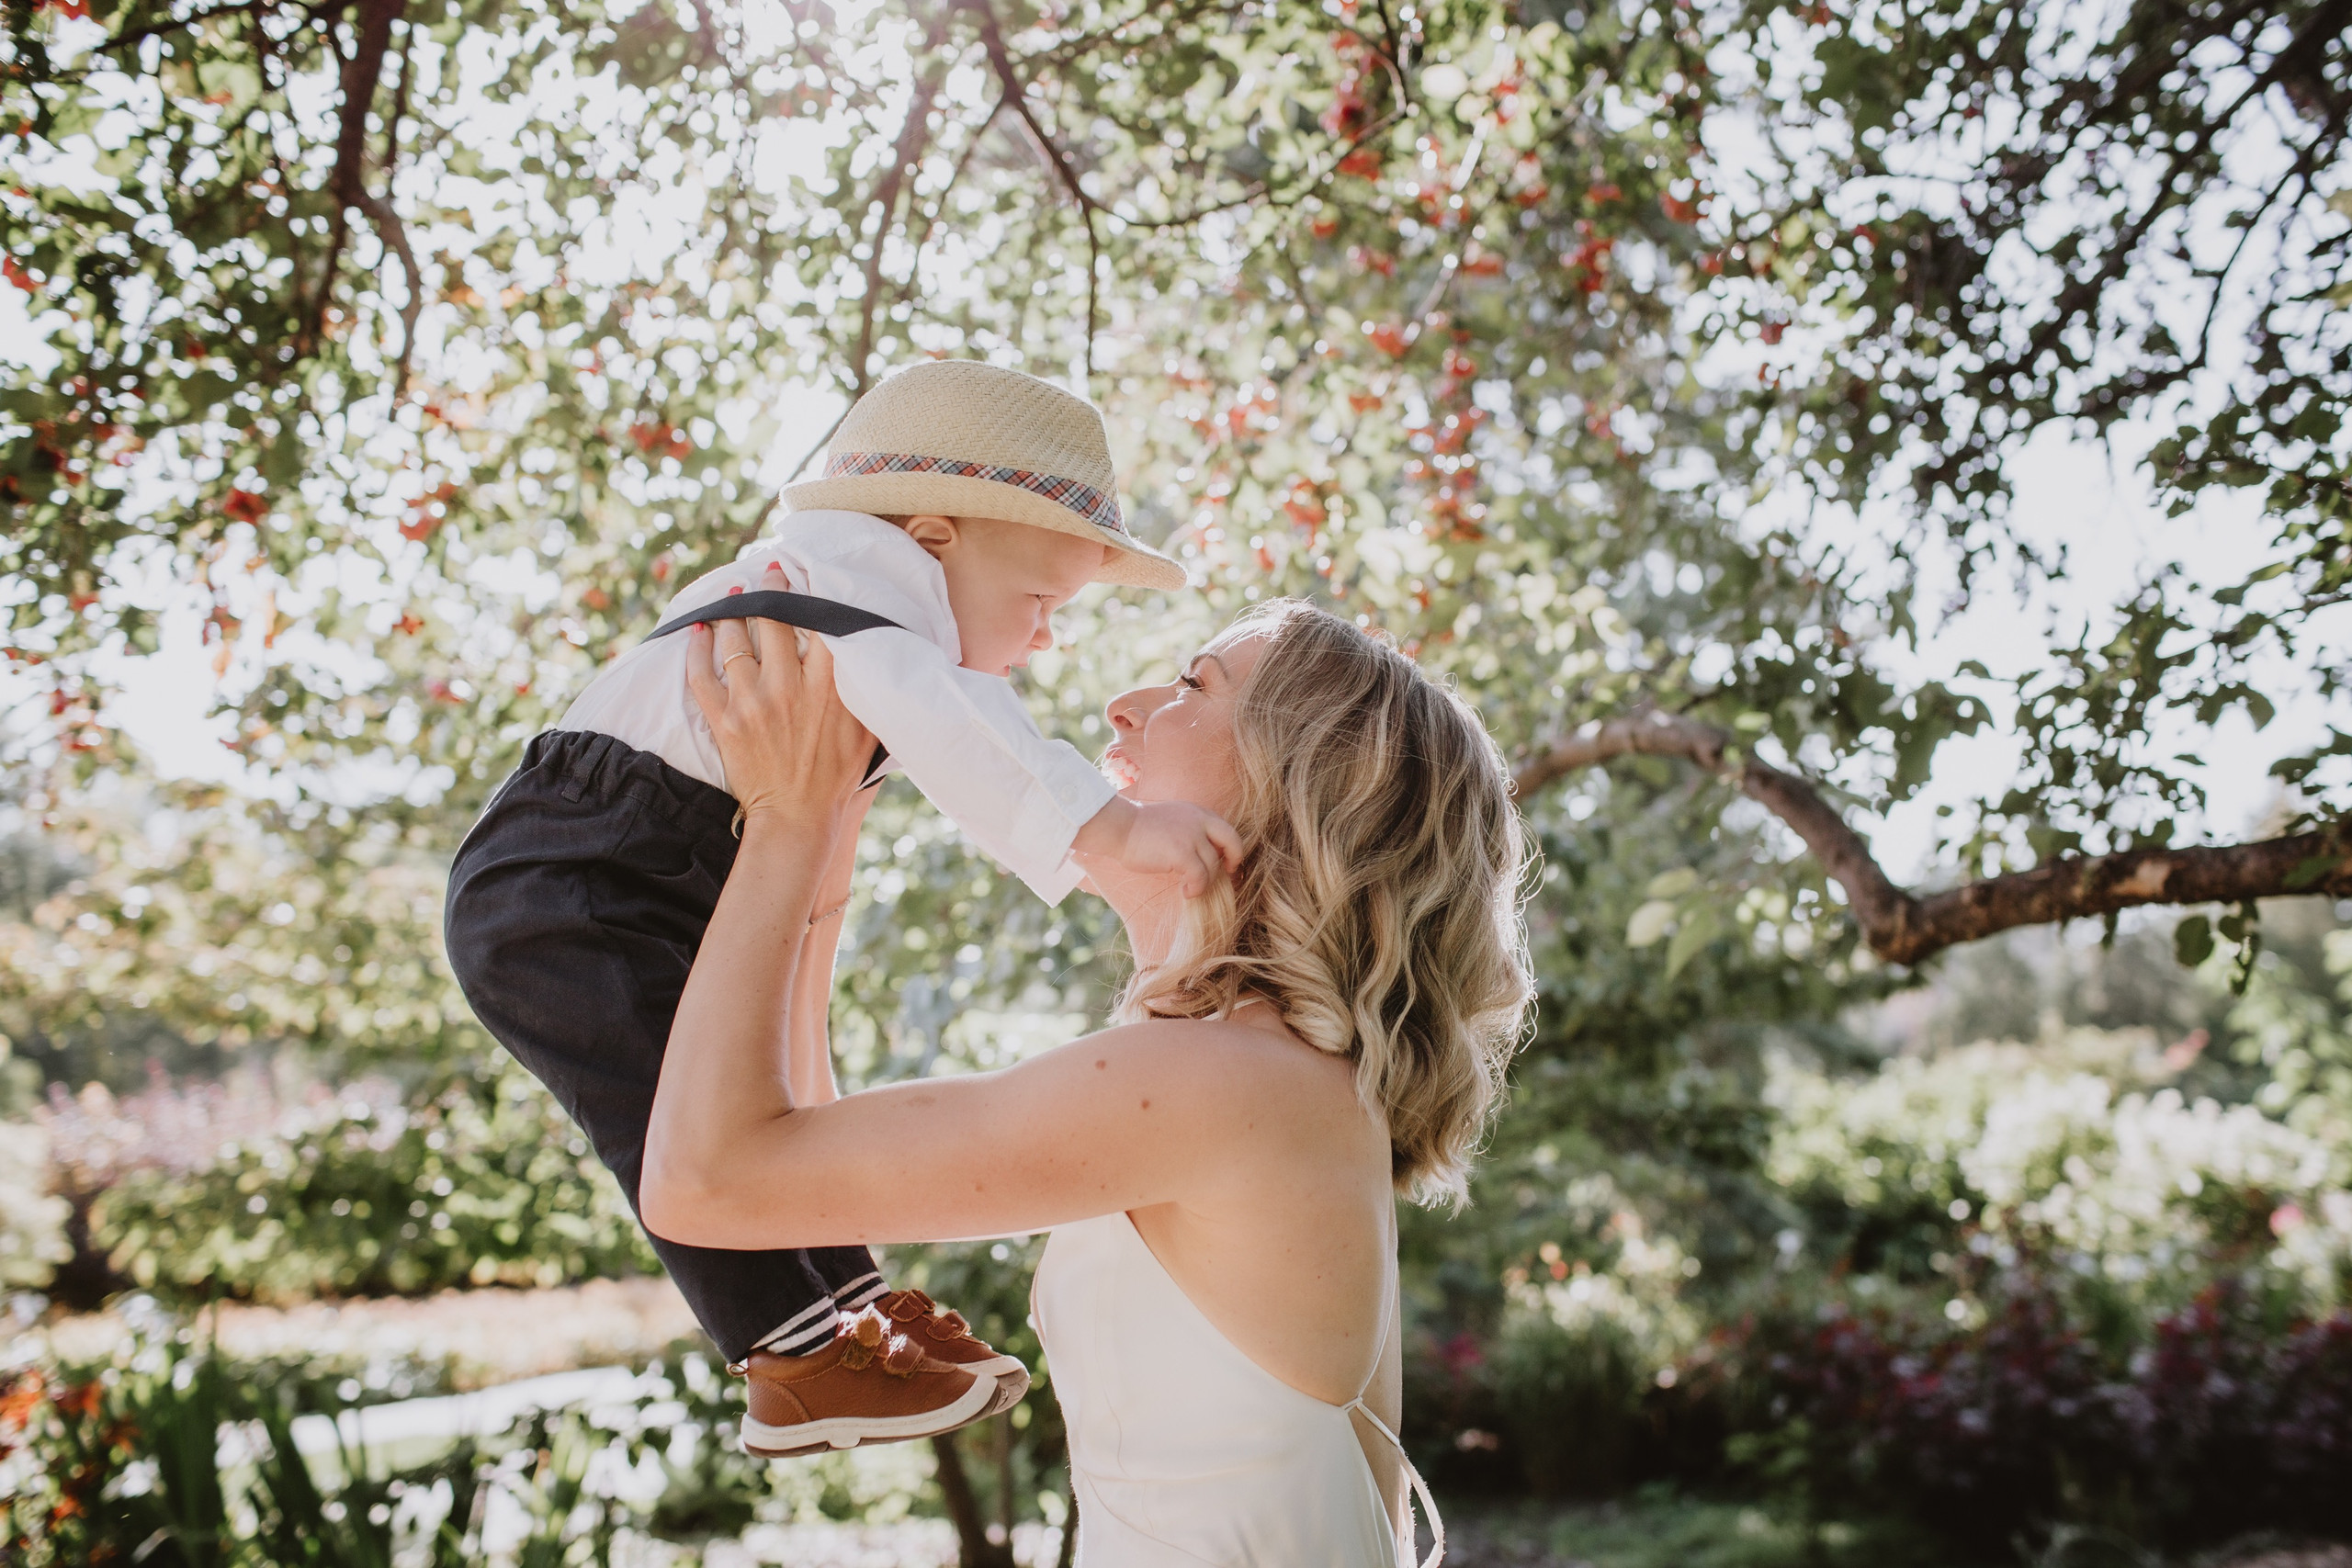 Bride Lifts Up Young Son during wedding day portraits.